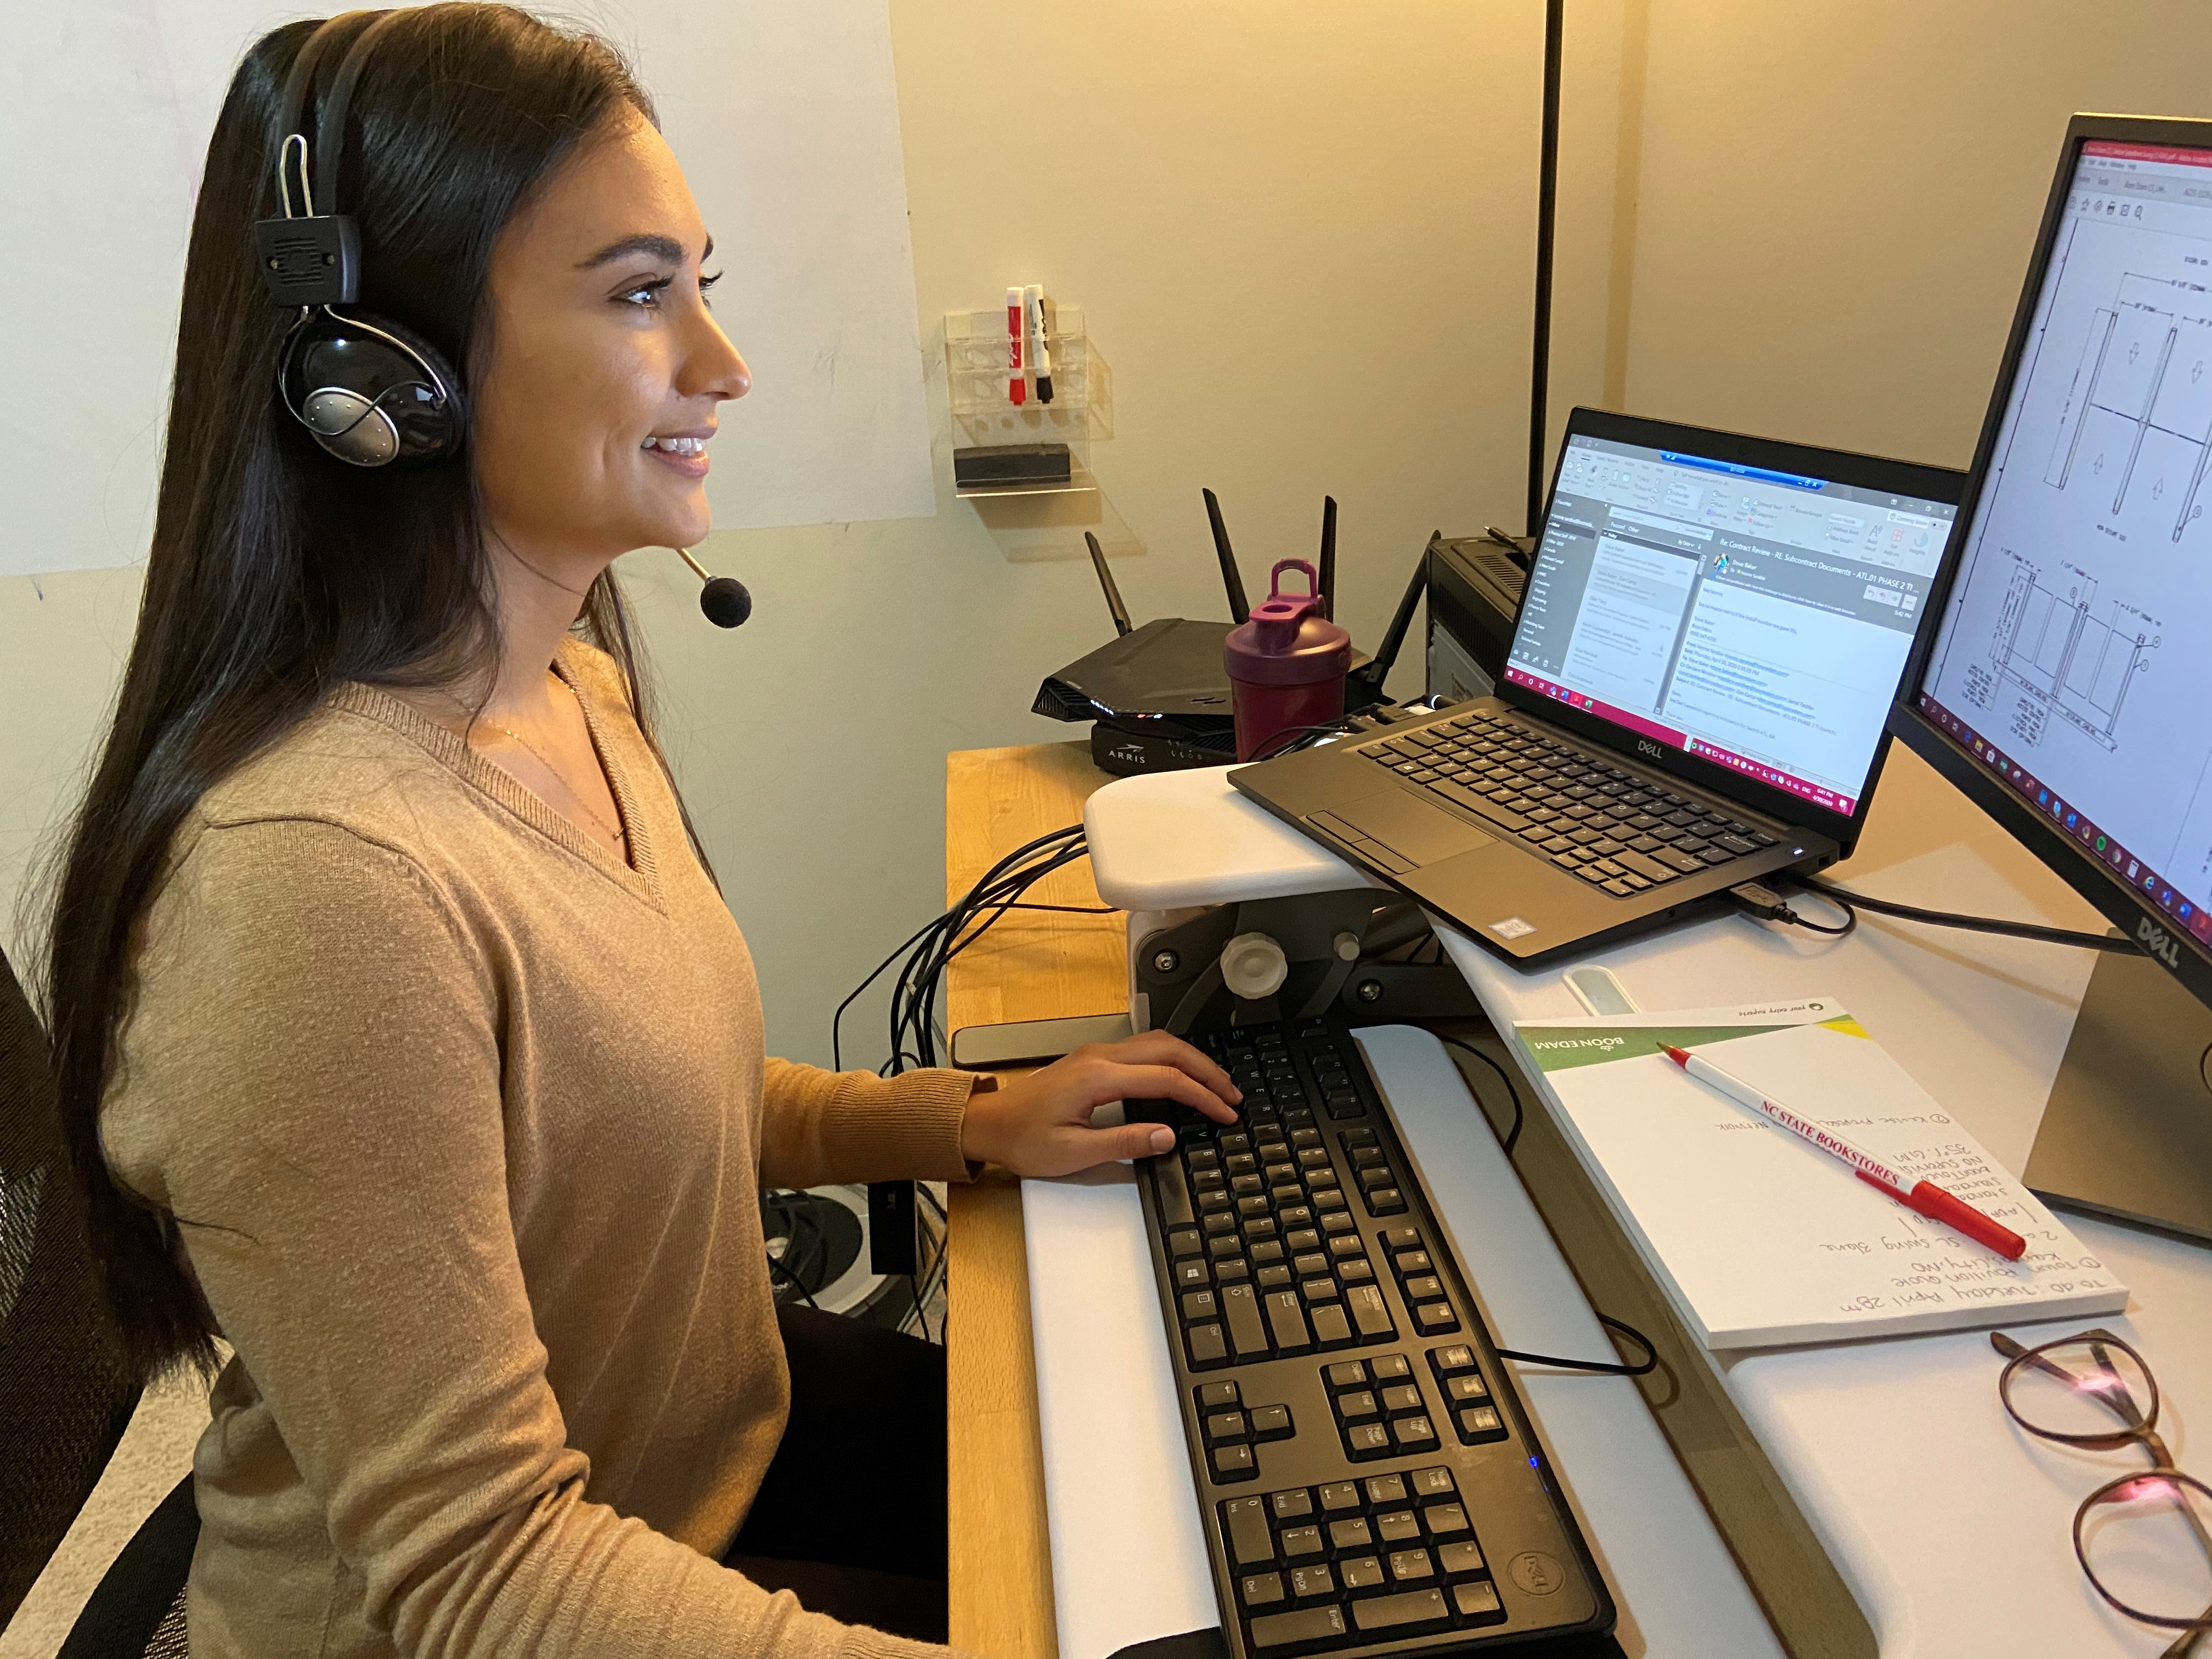 During COVID-19, Boon Edam Customer Service Teams Began TeleWorking to Deliver the Same High Level of Customer Service